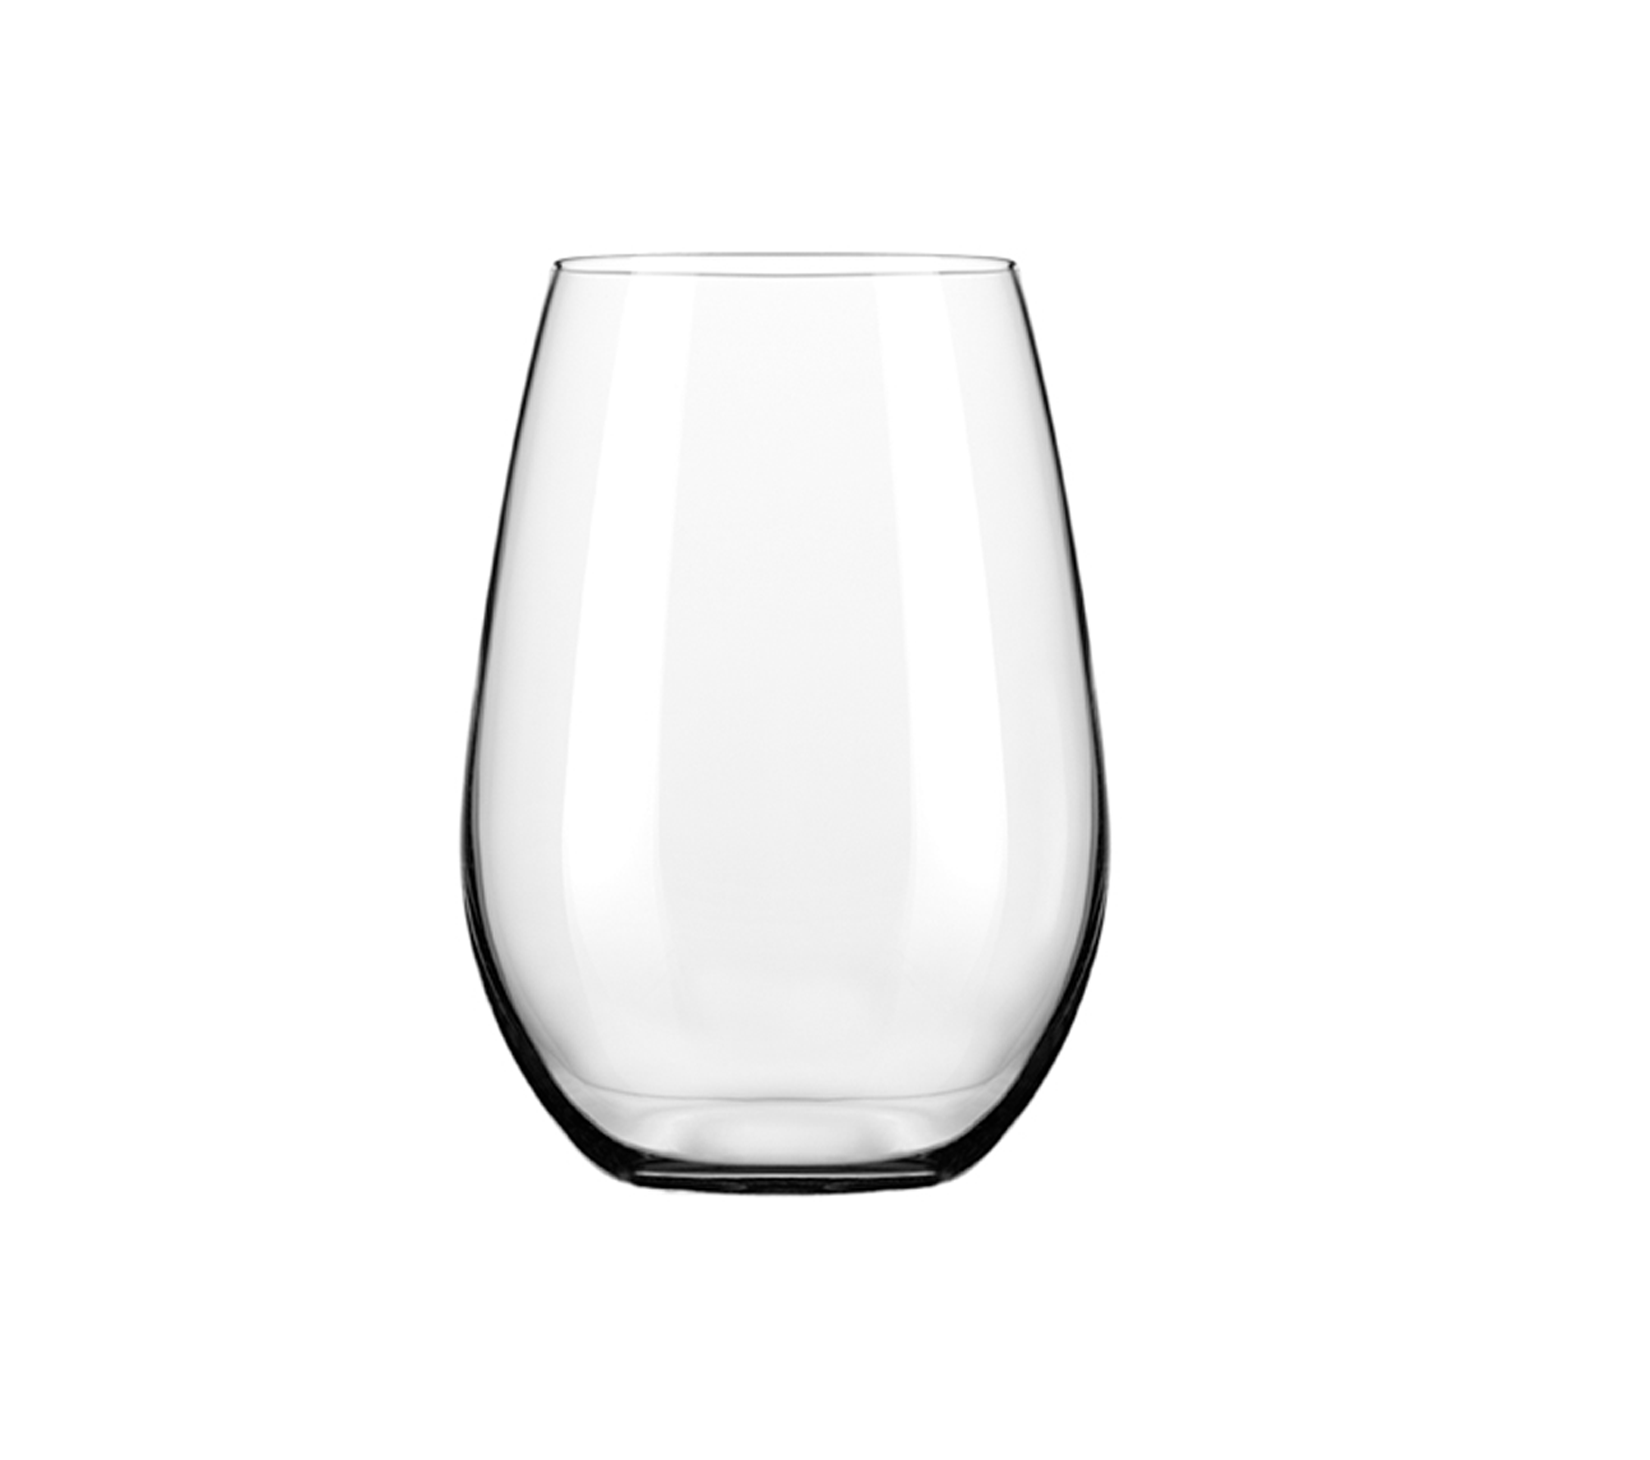 12oz Stemless Wine Glass.